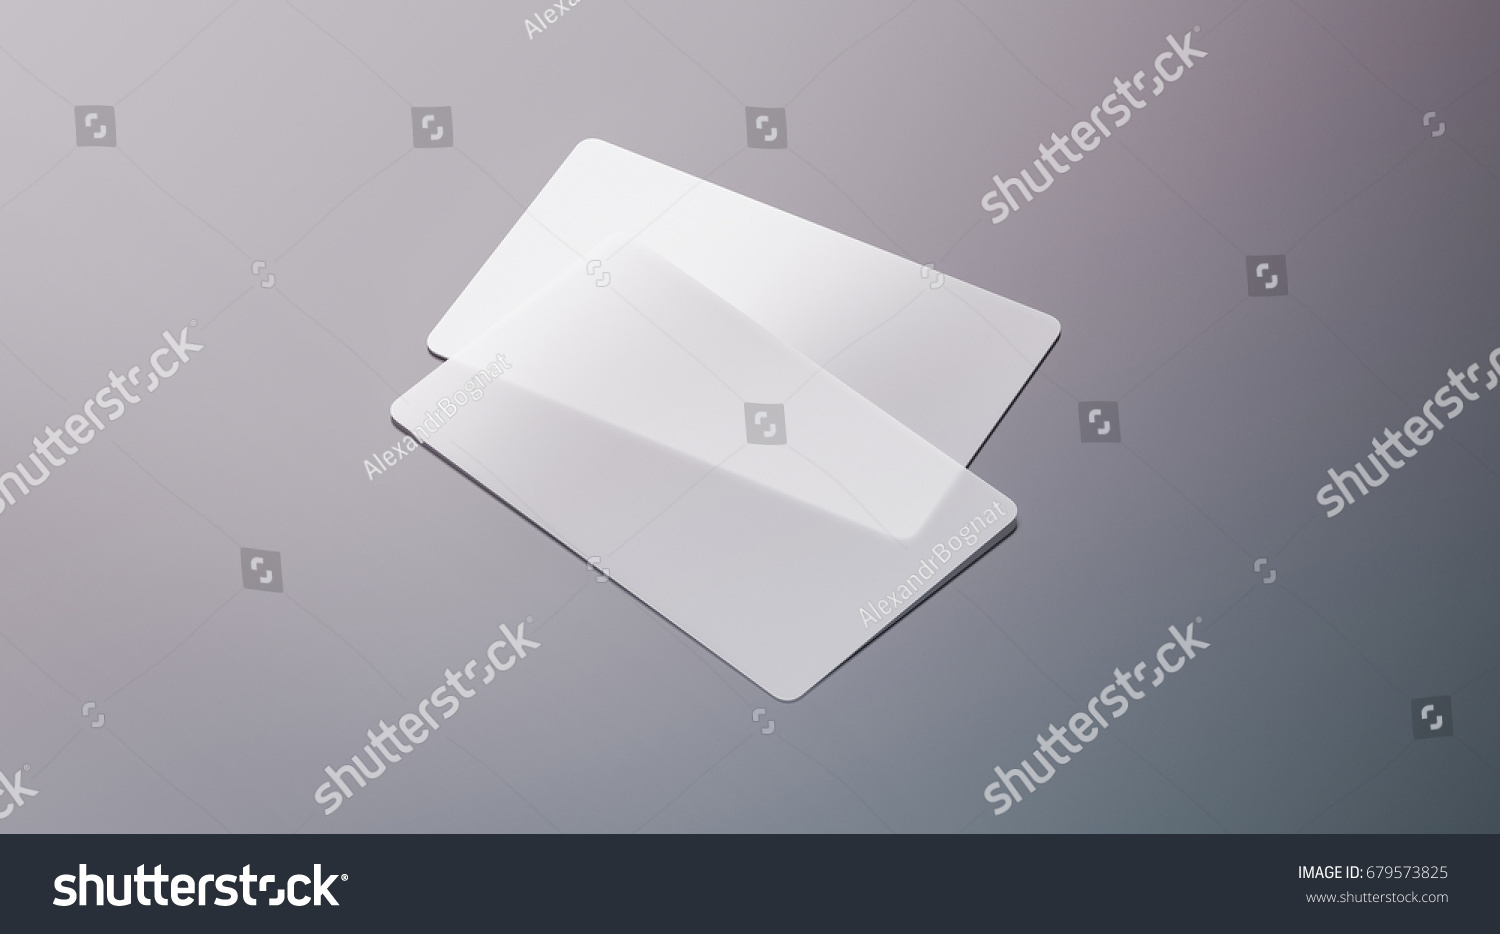 blank plastic transparent business cards mock up 3d rendering clear pvc namecard mockup with